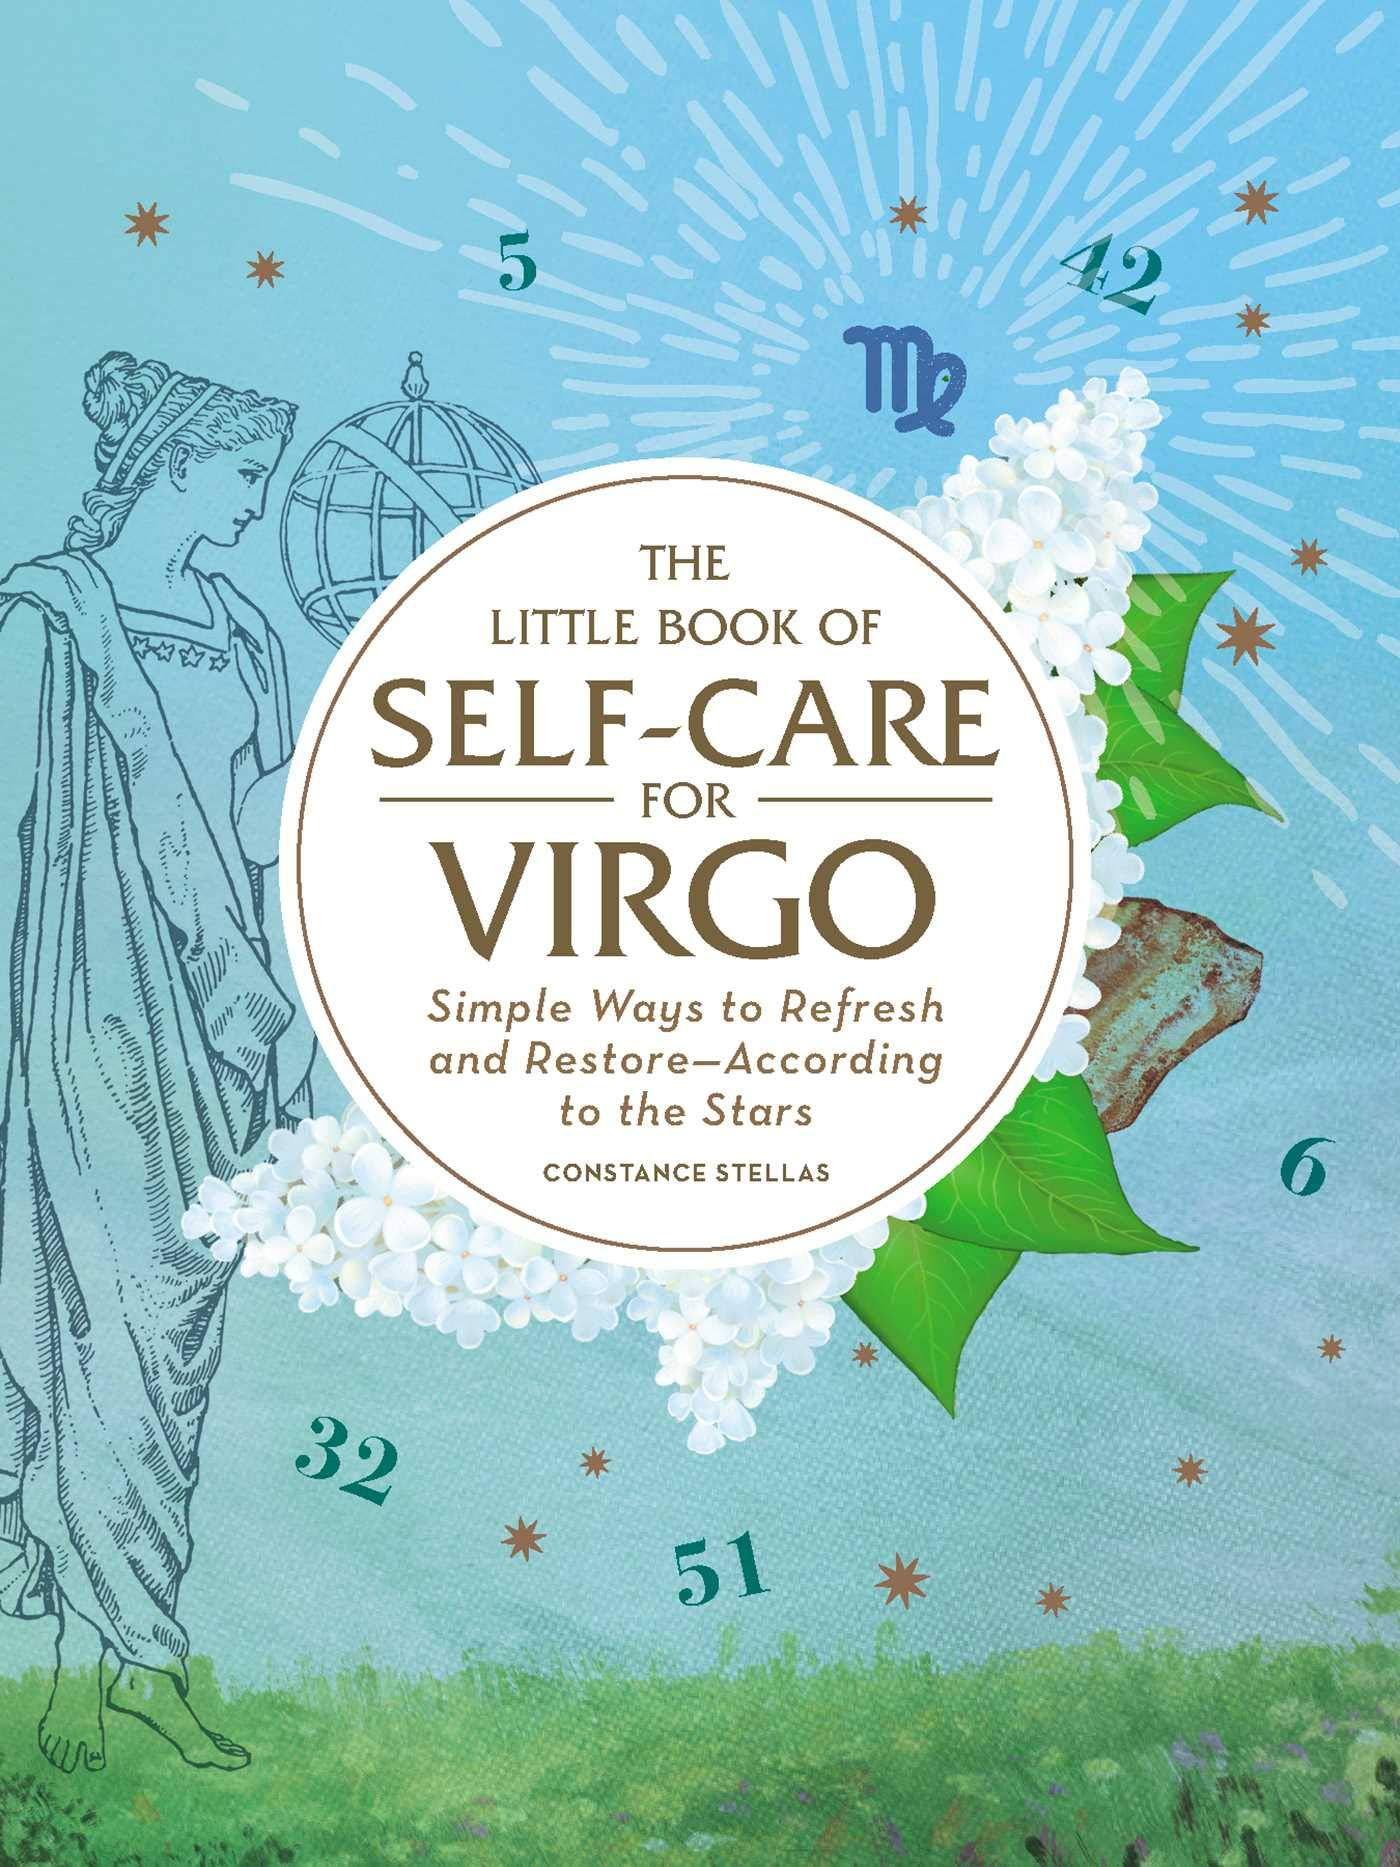 Little Book Self Care Virgo Restore According product image